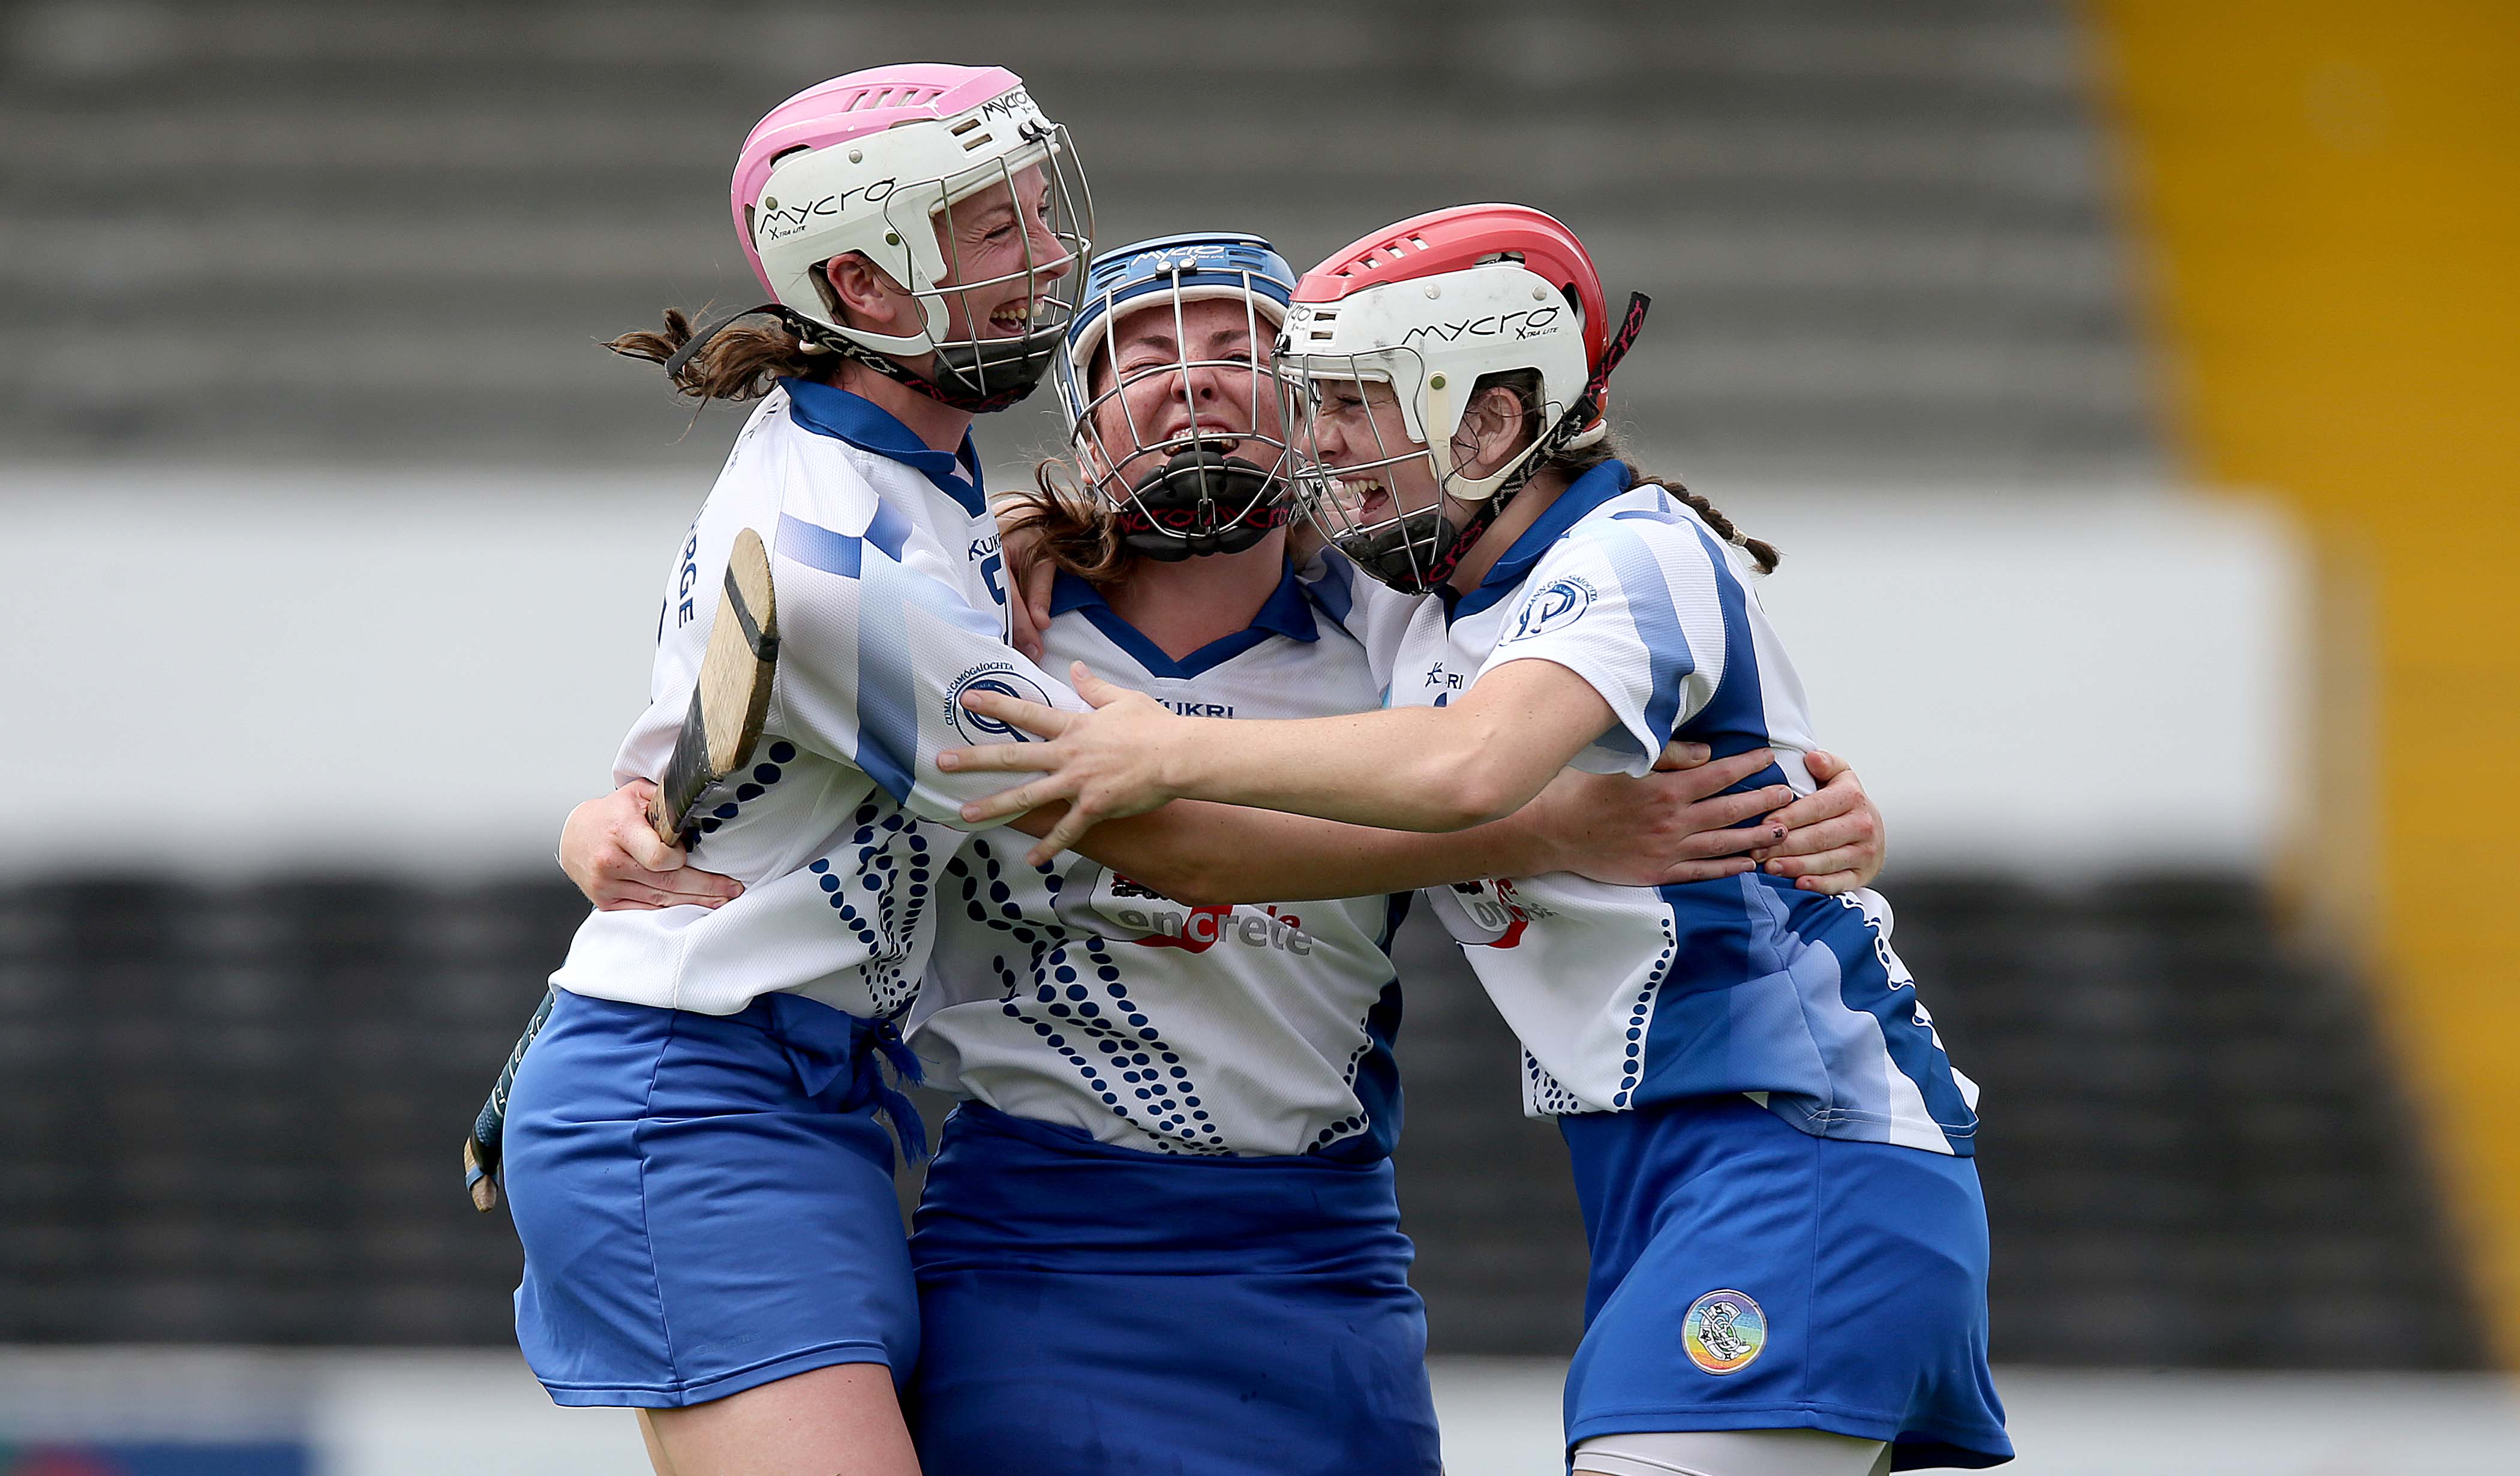 REPRO FREE***PRESS RELEASE NO REPRODUCTION FEE*** Liberty Insurance Intermediate Camogie Championship Semi-Final, Nowlan Park, Kilkenny 22/8/2015 Waterford vs Meath Charlotte Raher, Claire Whyte and Becky Kavanagh of Waterford celebrate at the final whistle Mandatory Credit ©INPHO/Donall Farmer